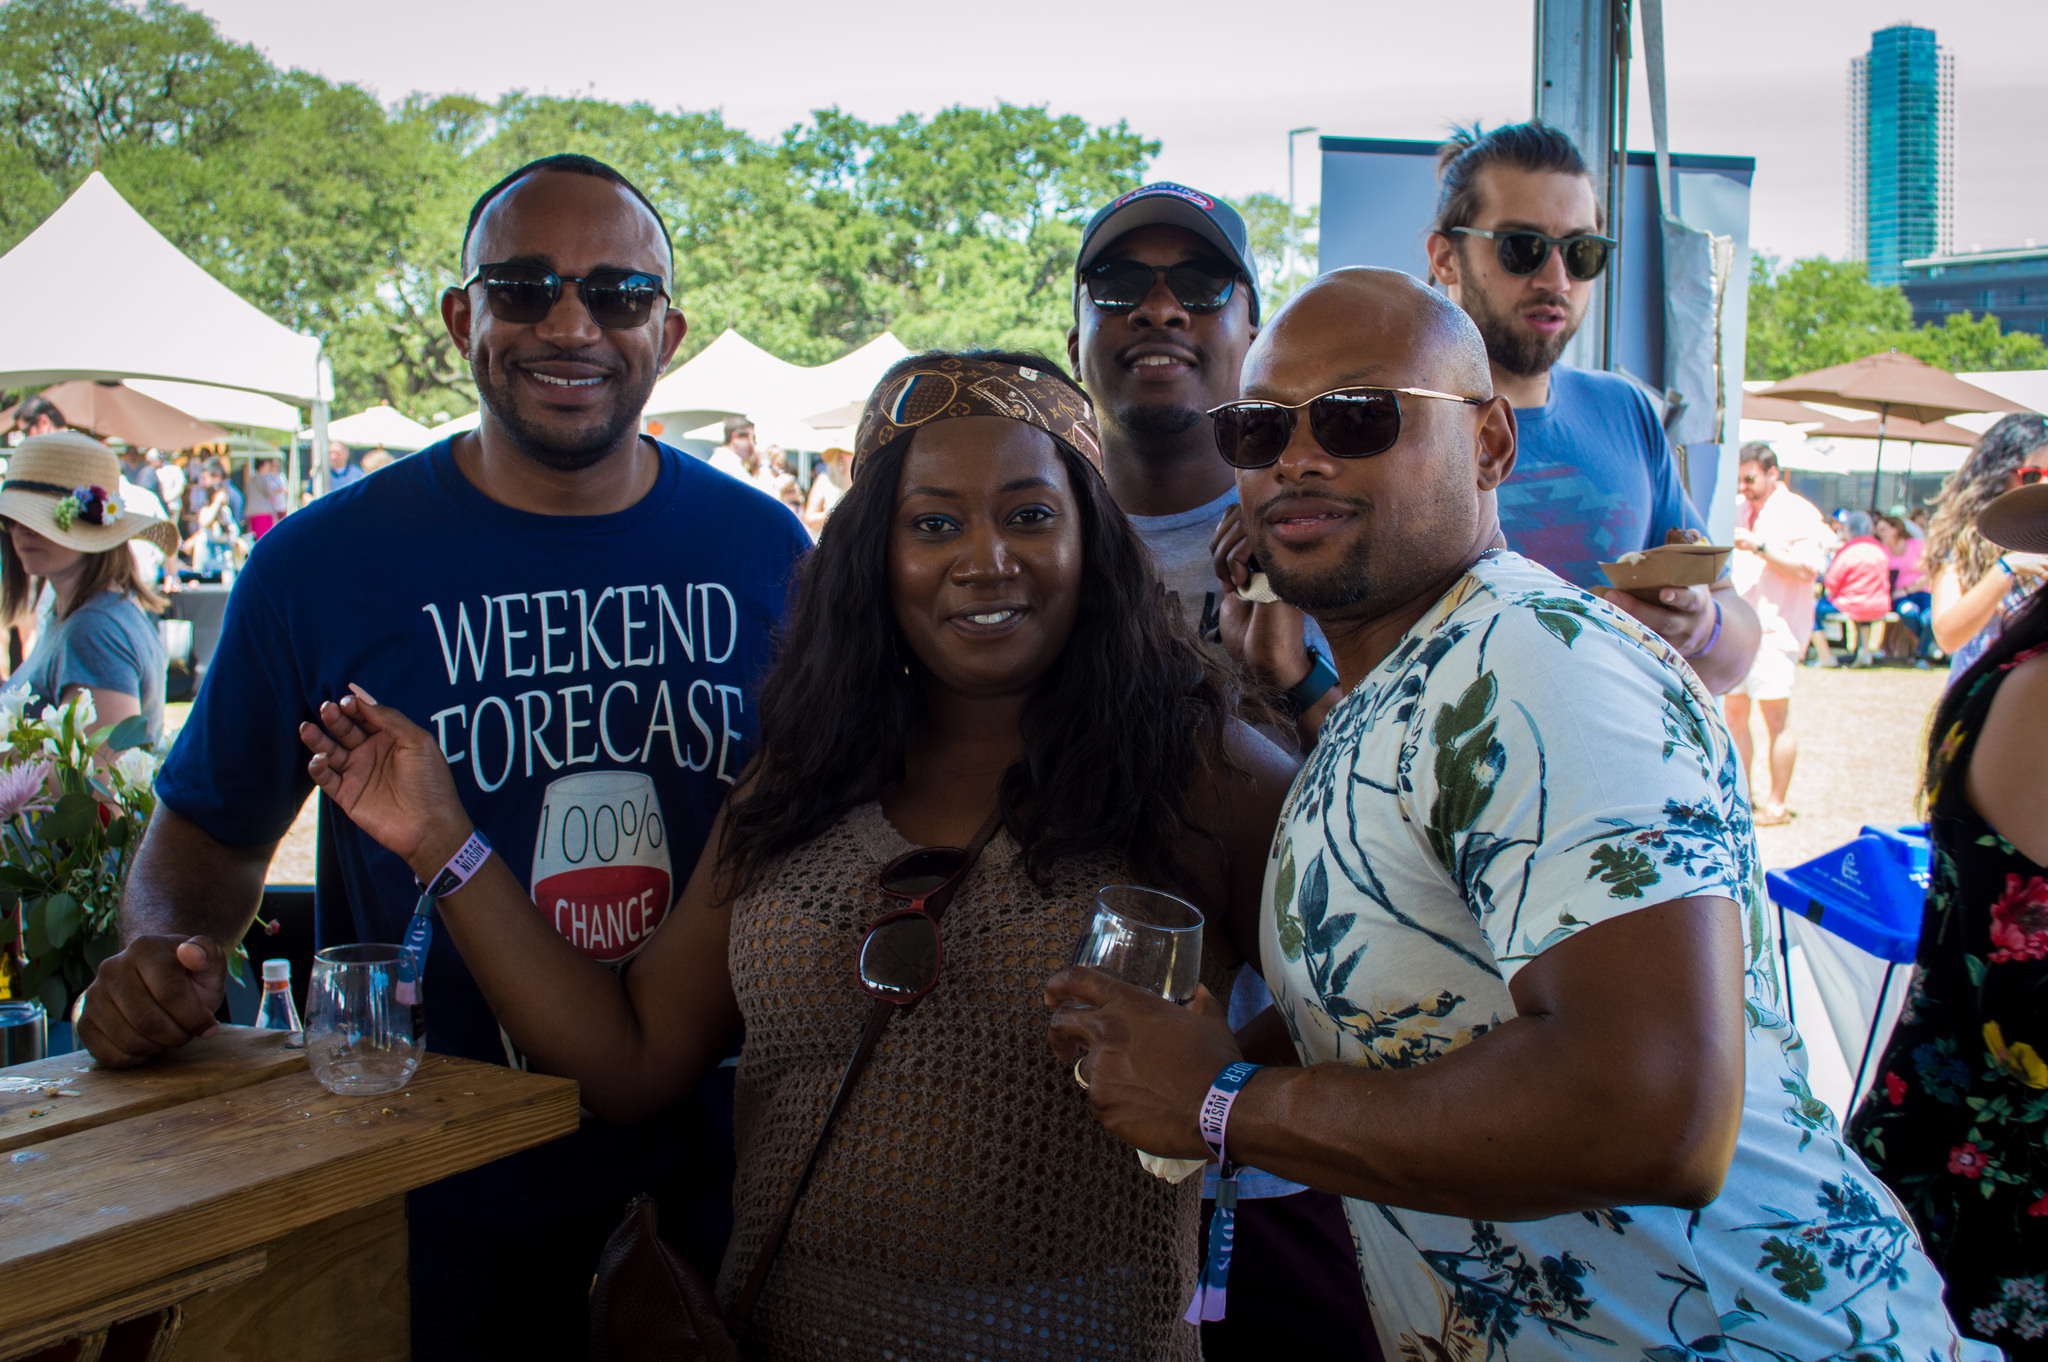 One of the best parts of the festival is the Black Texas recap, which features photos of some of our favorite people from the festival as much more. Photo by Nick Bailey